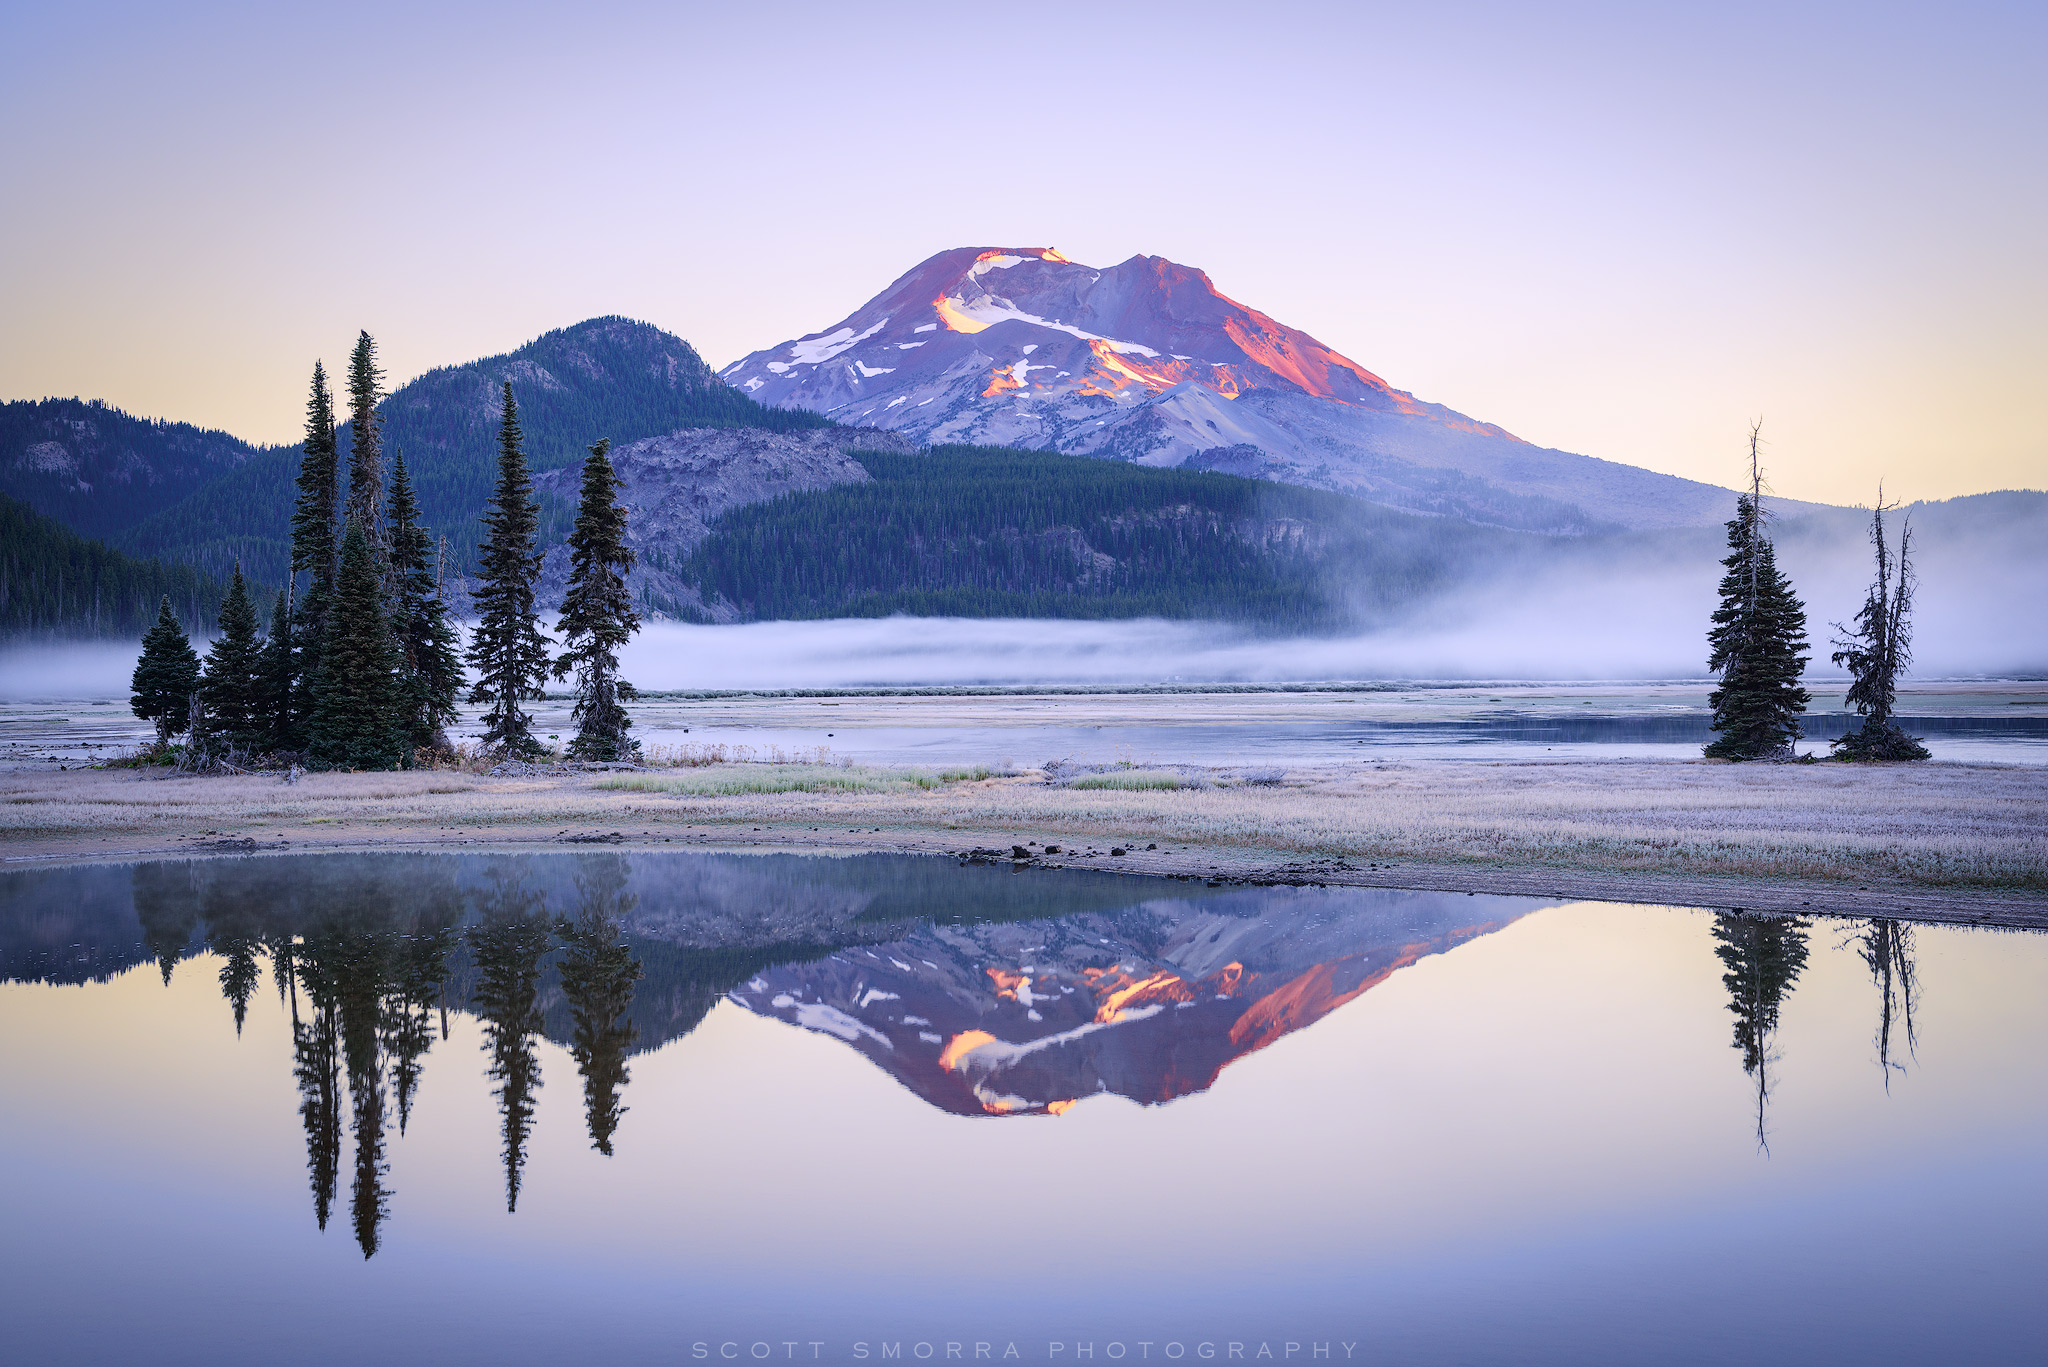 Fine Art Limited Edition of 100 - A frosty early autumn sunrise at Sparks Lake, Deschutes National Forest, Central Oregon Cascades...